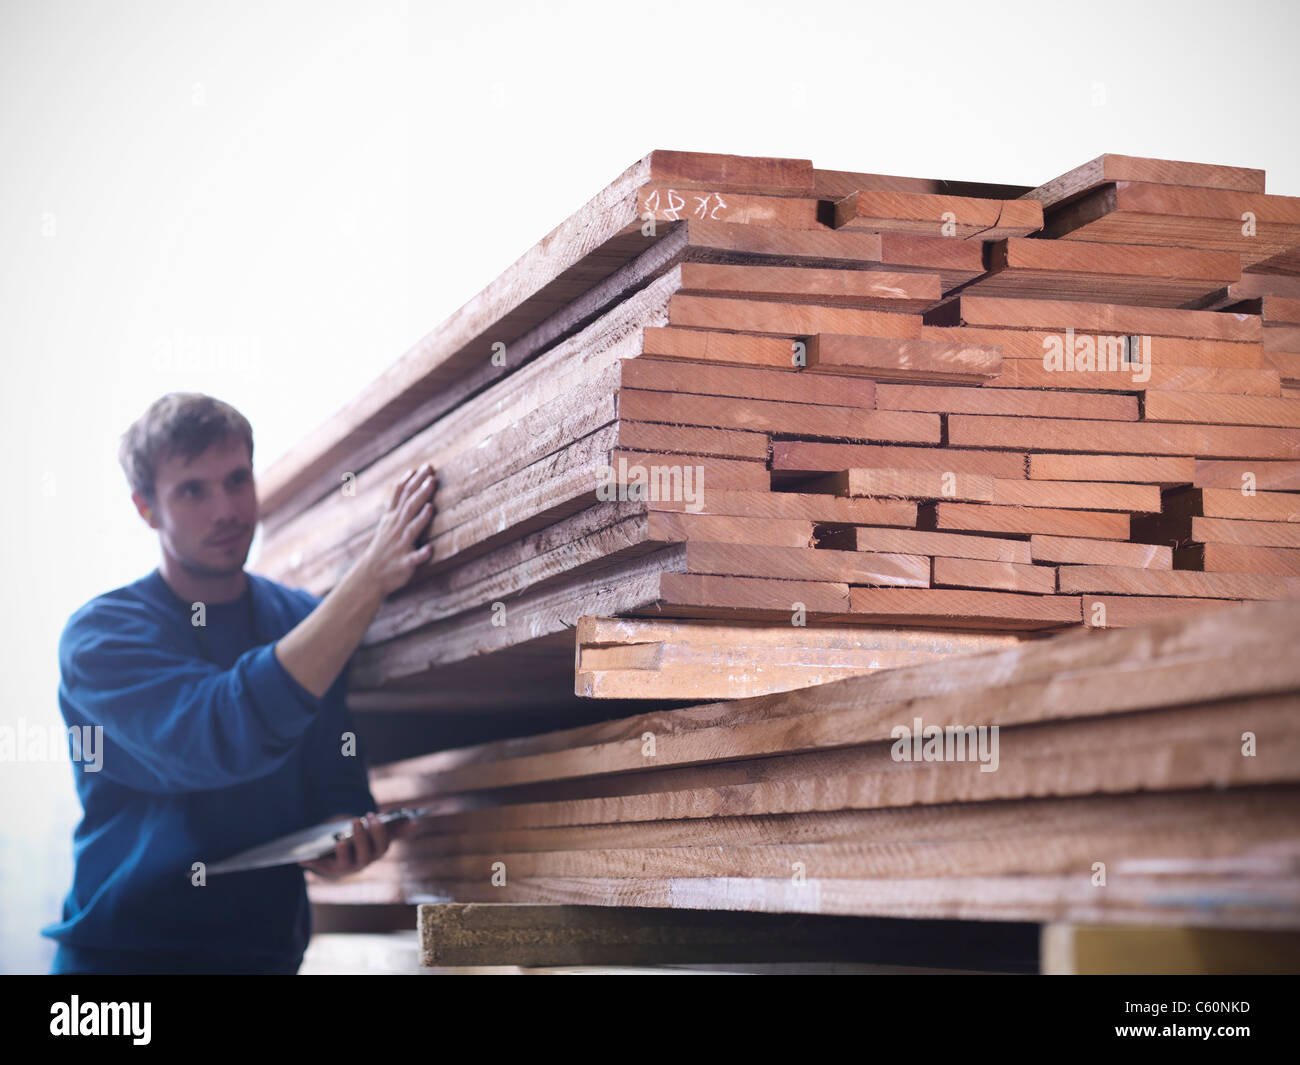 Worker examining wood in joinery - Stock Image